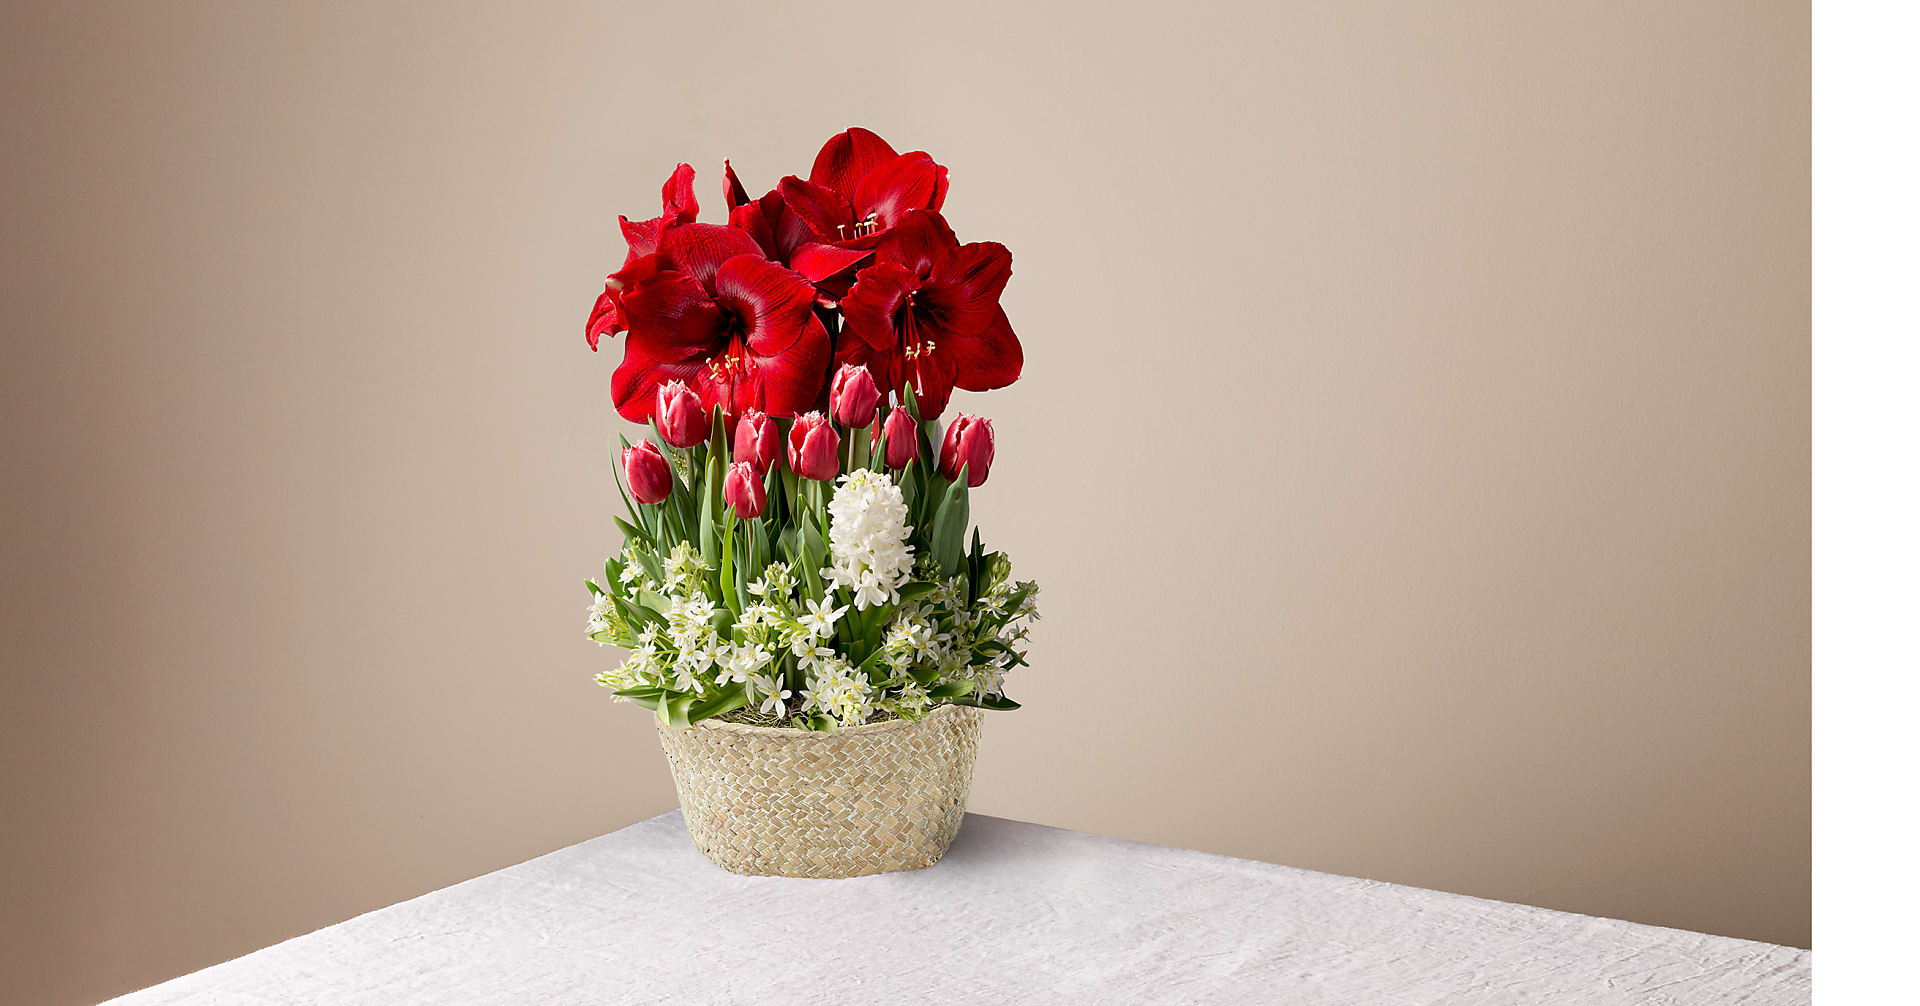 Blooming Love Amaryllis Bulb Garden - Image 1 Of 2